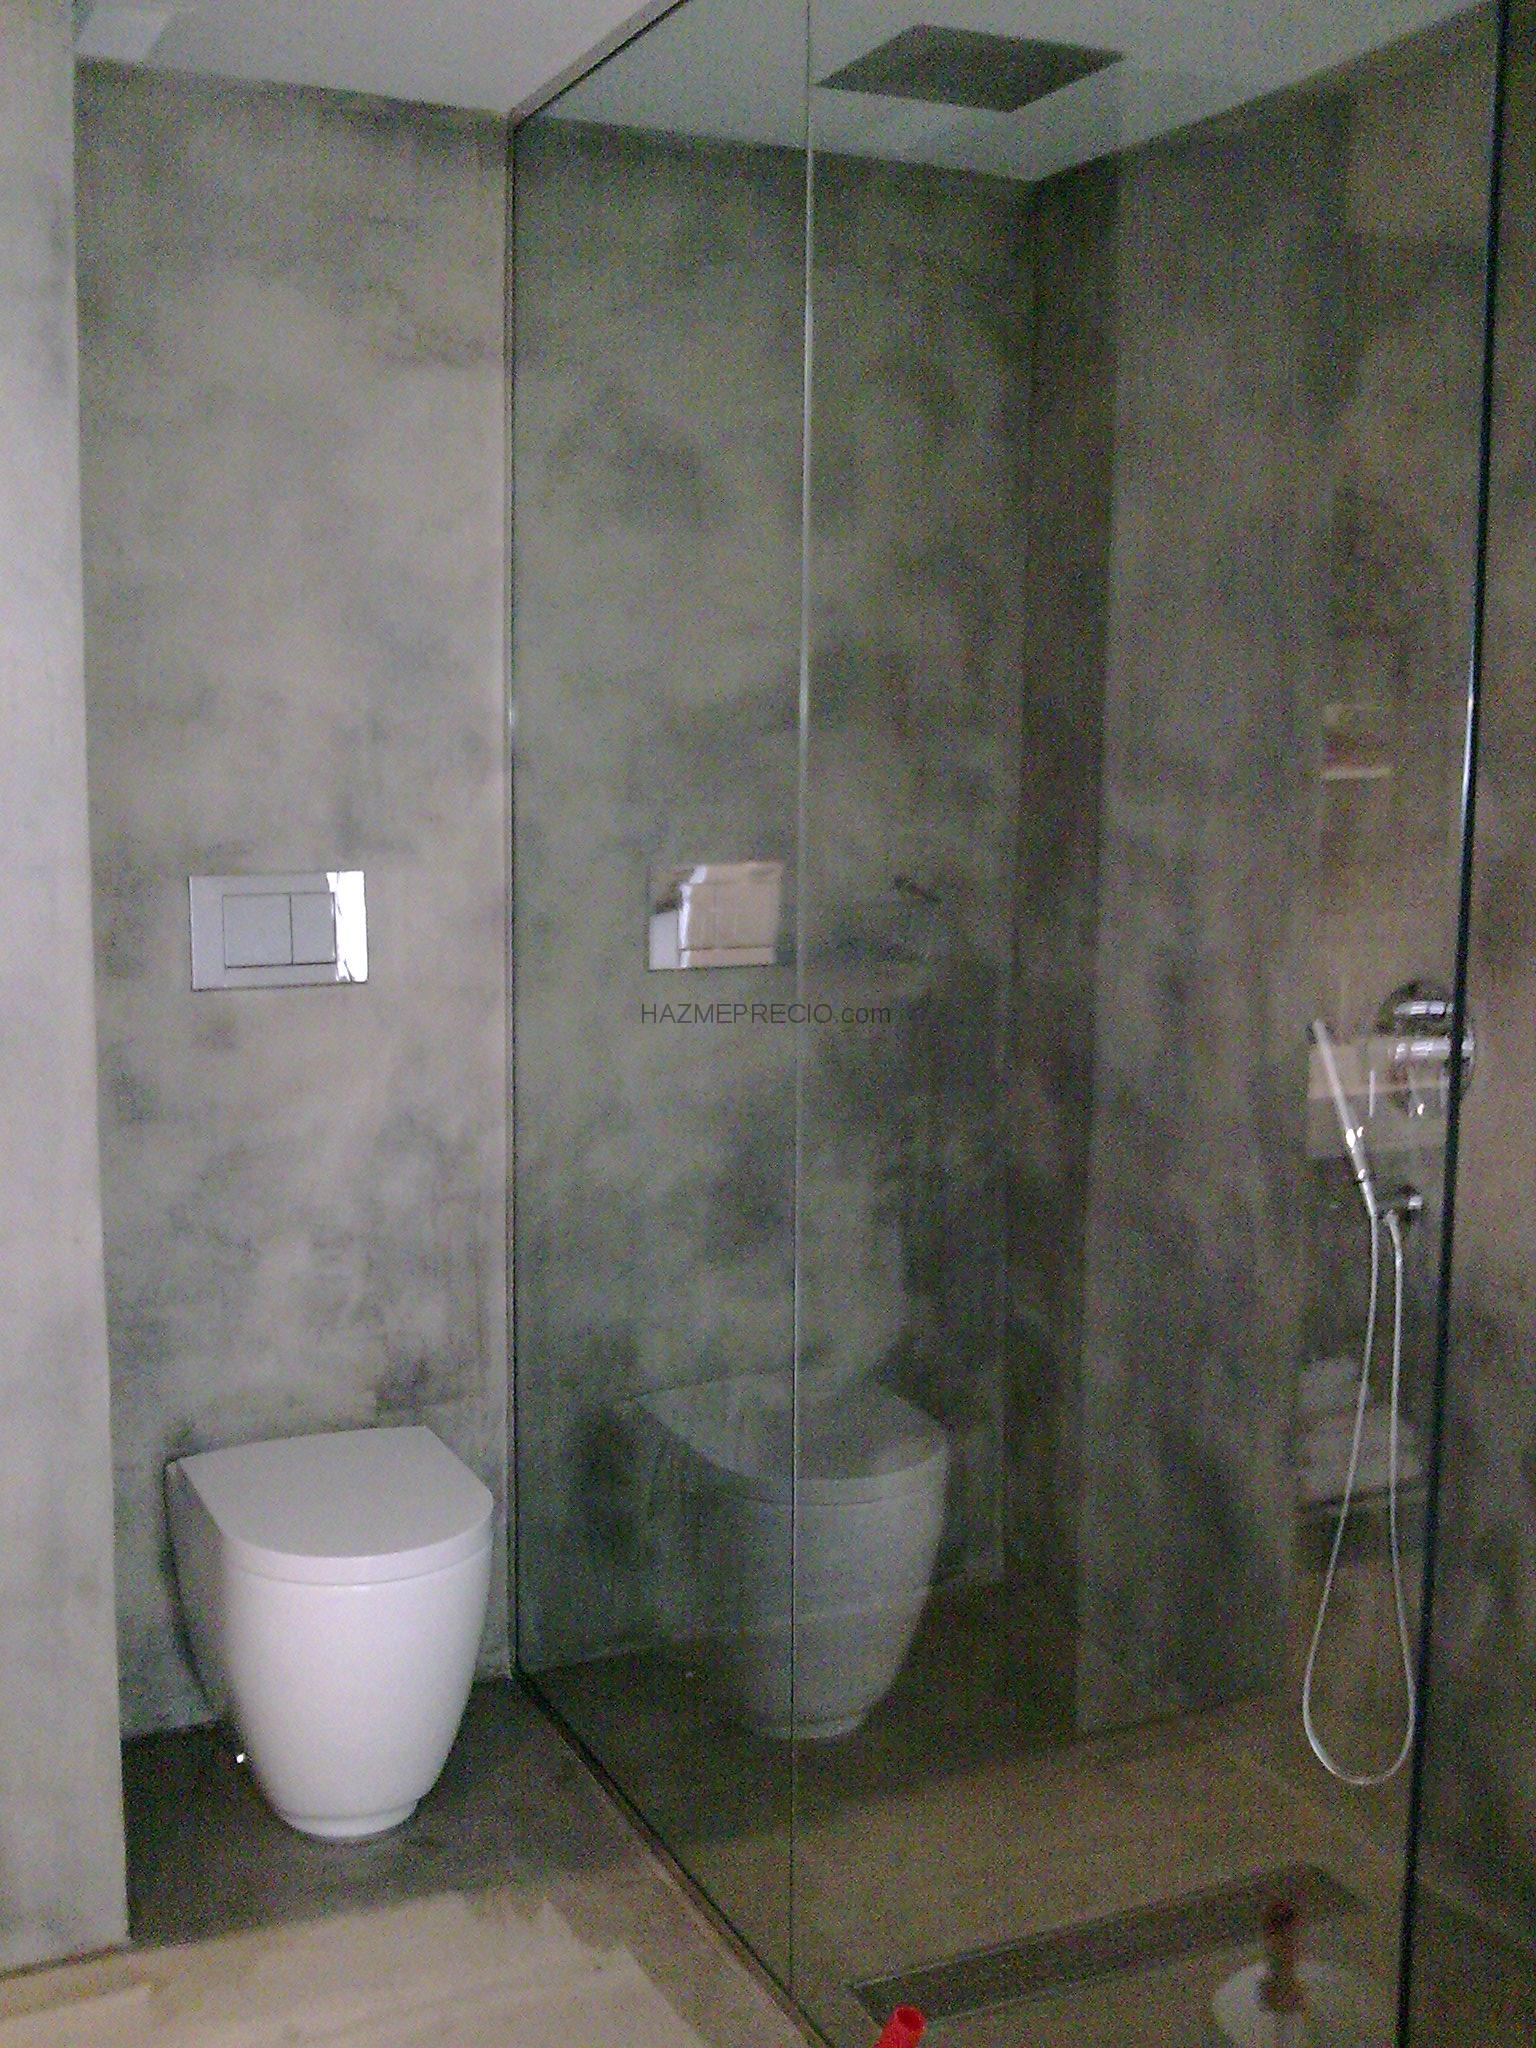 Baños Con Microcemento Fotos:Baño En Microcemento Suelo En Laminado 100 Pictures to pin on